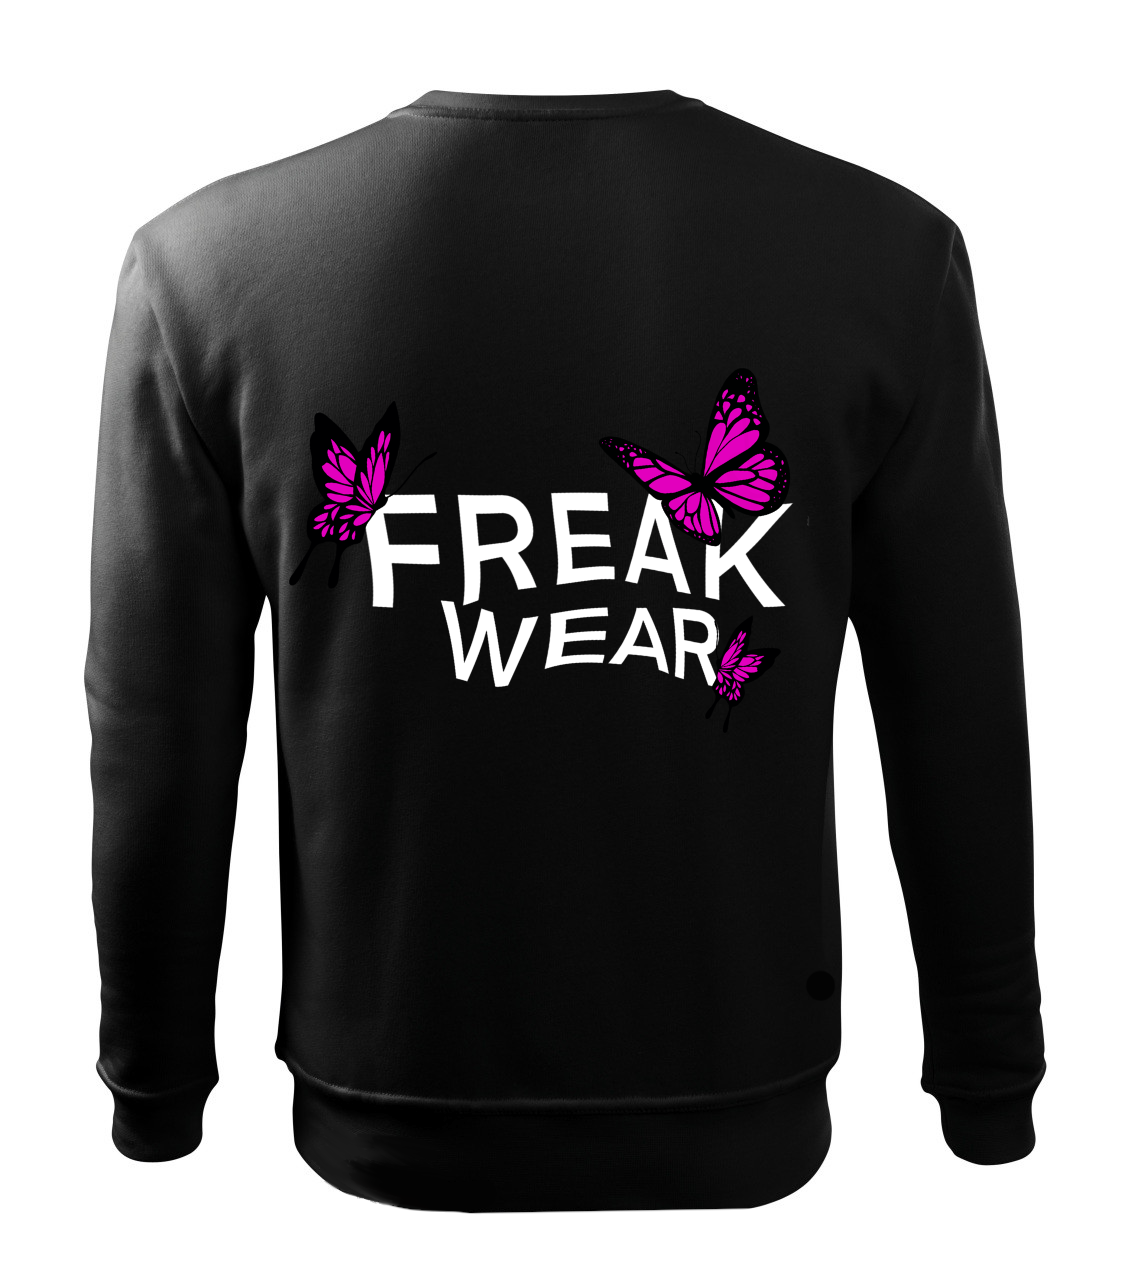 Mikina Freak Wear bez kapuce BL dark pink